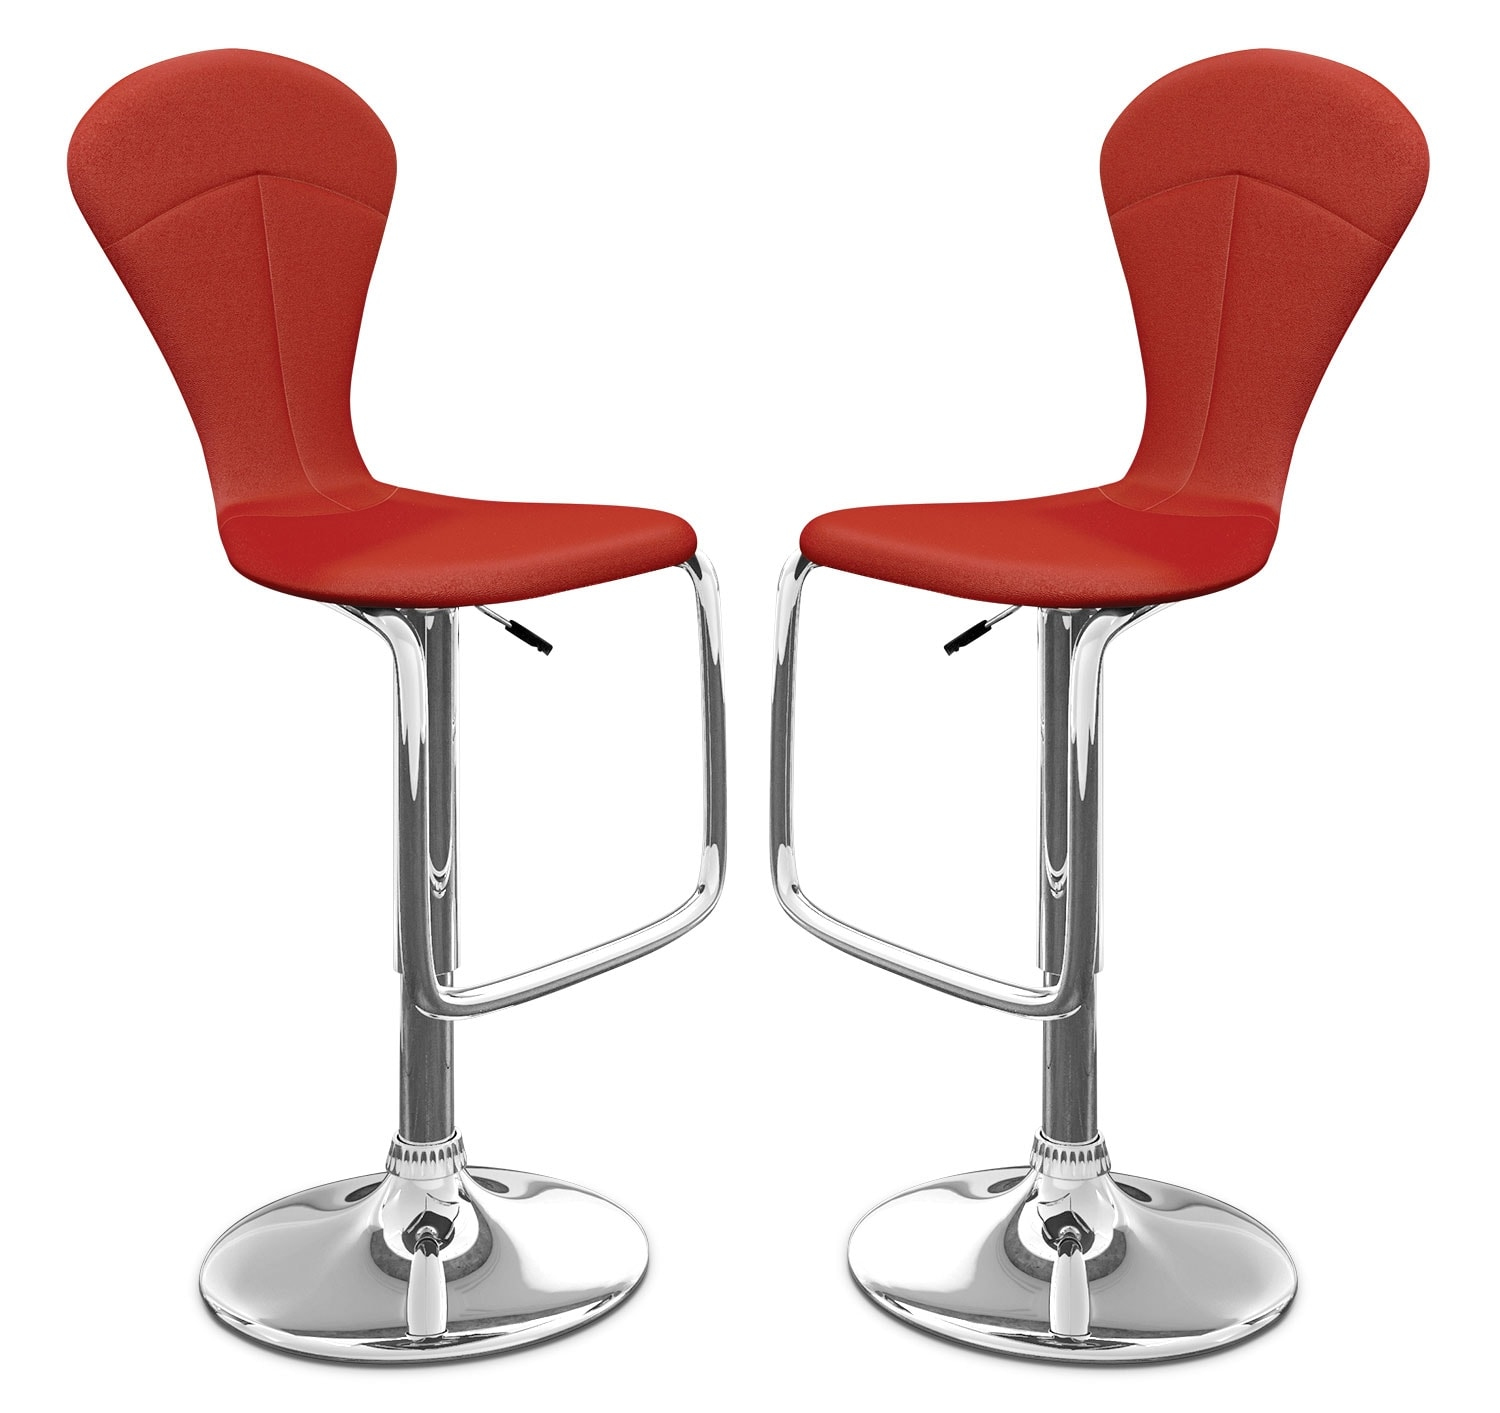 Dining Room Furniture - CorLiving Tapered Full-Back Adjustable Bar Stool, Set of 2 – Red